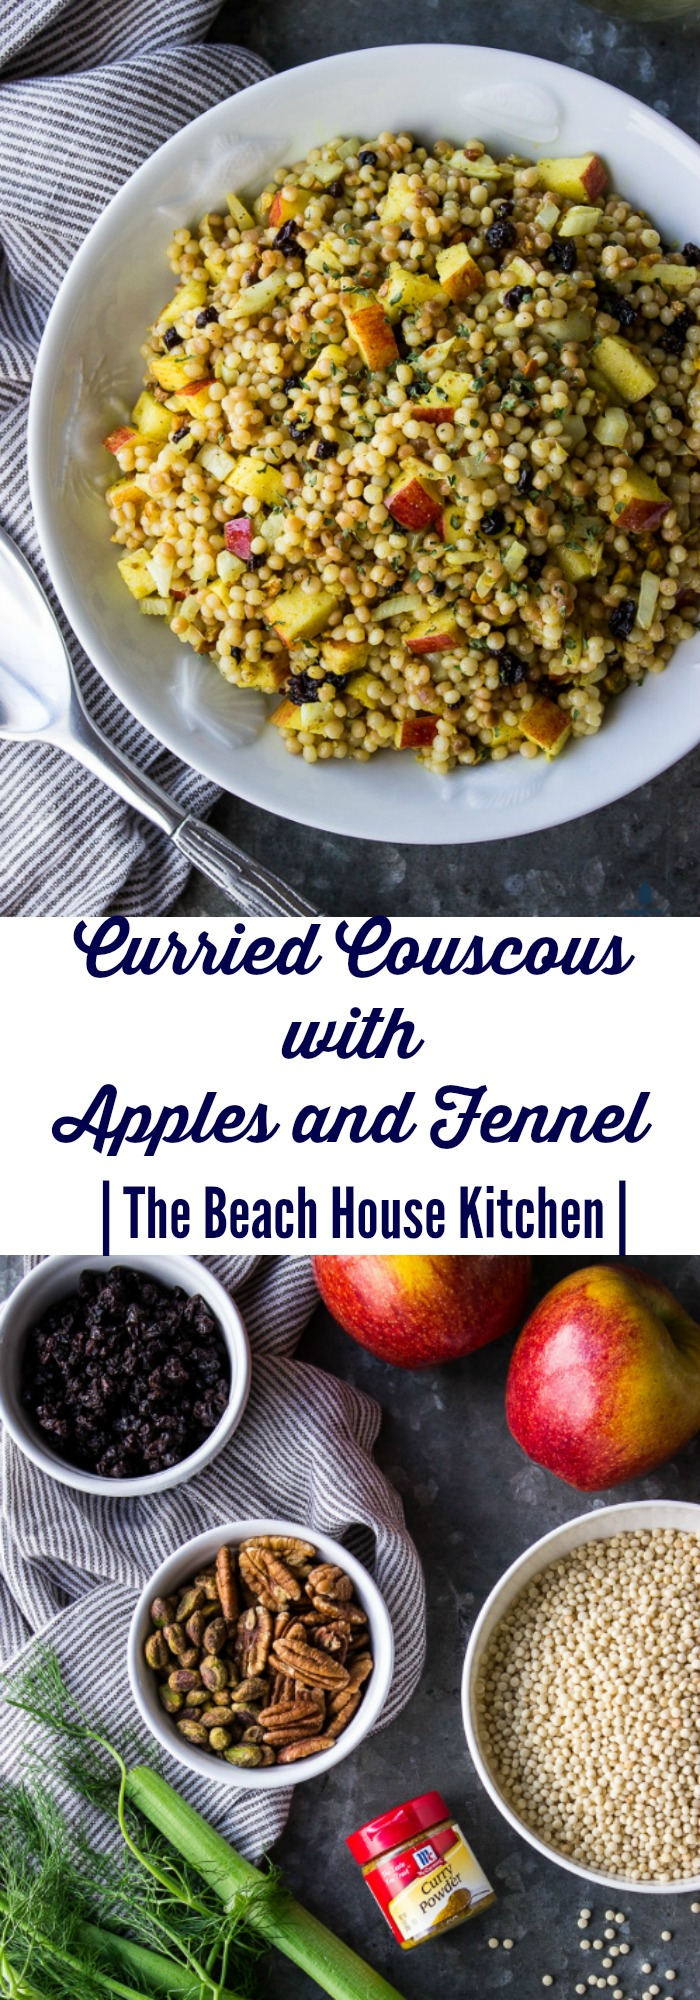 Curried Couscous with Apples and Fennel